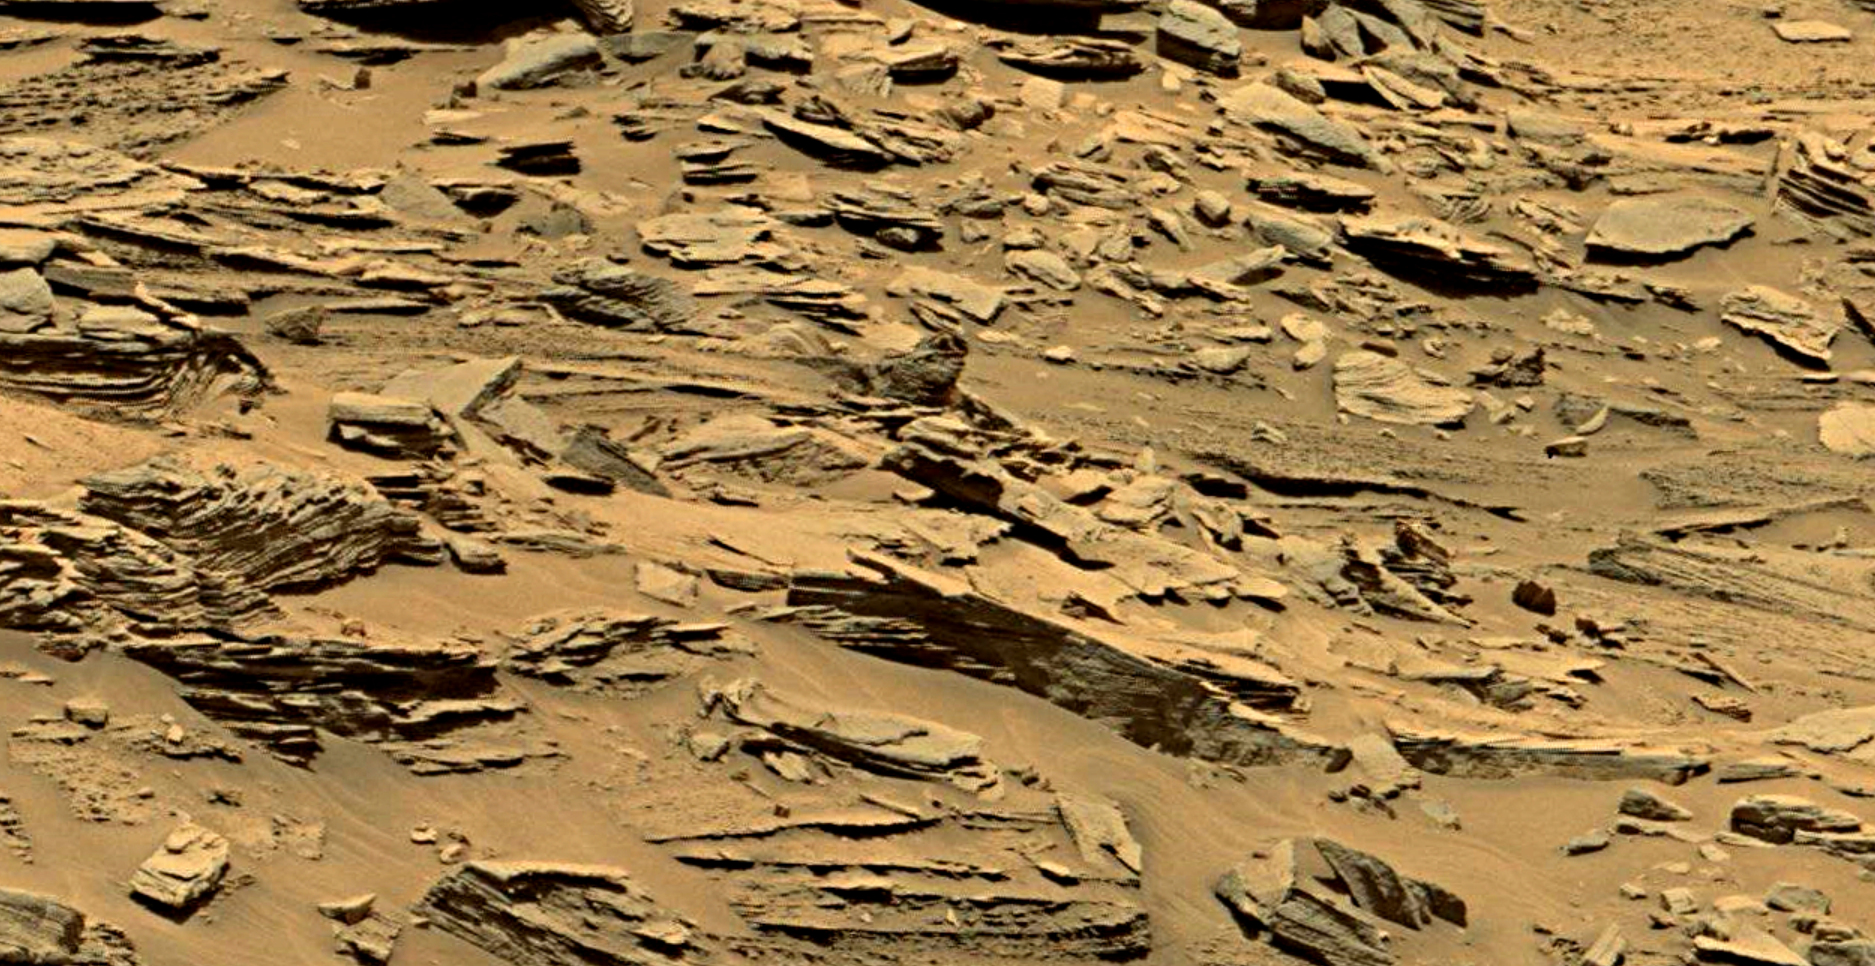 mars sol 1353 anomaly-artifacts 28 was life on mars